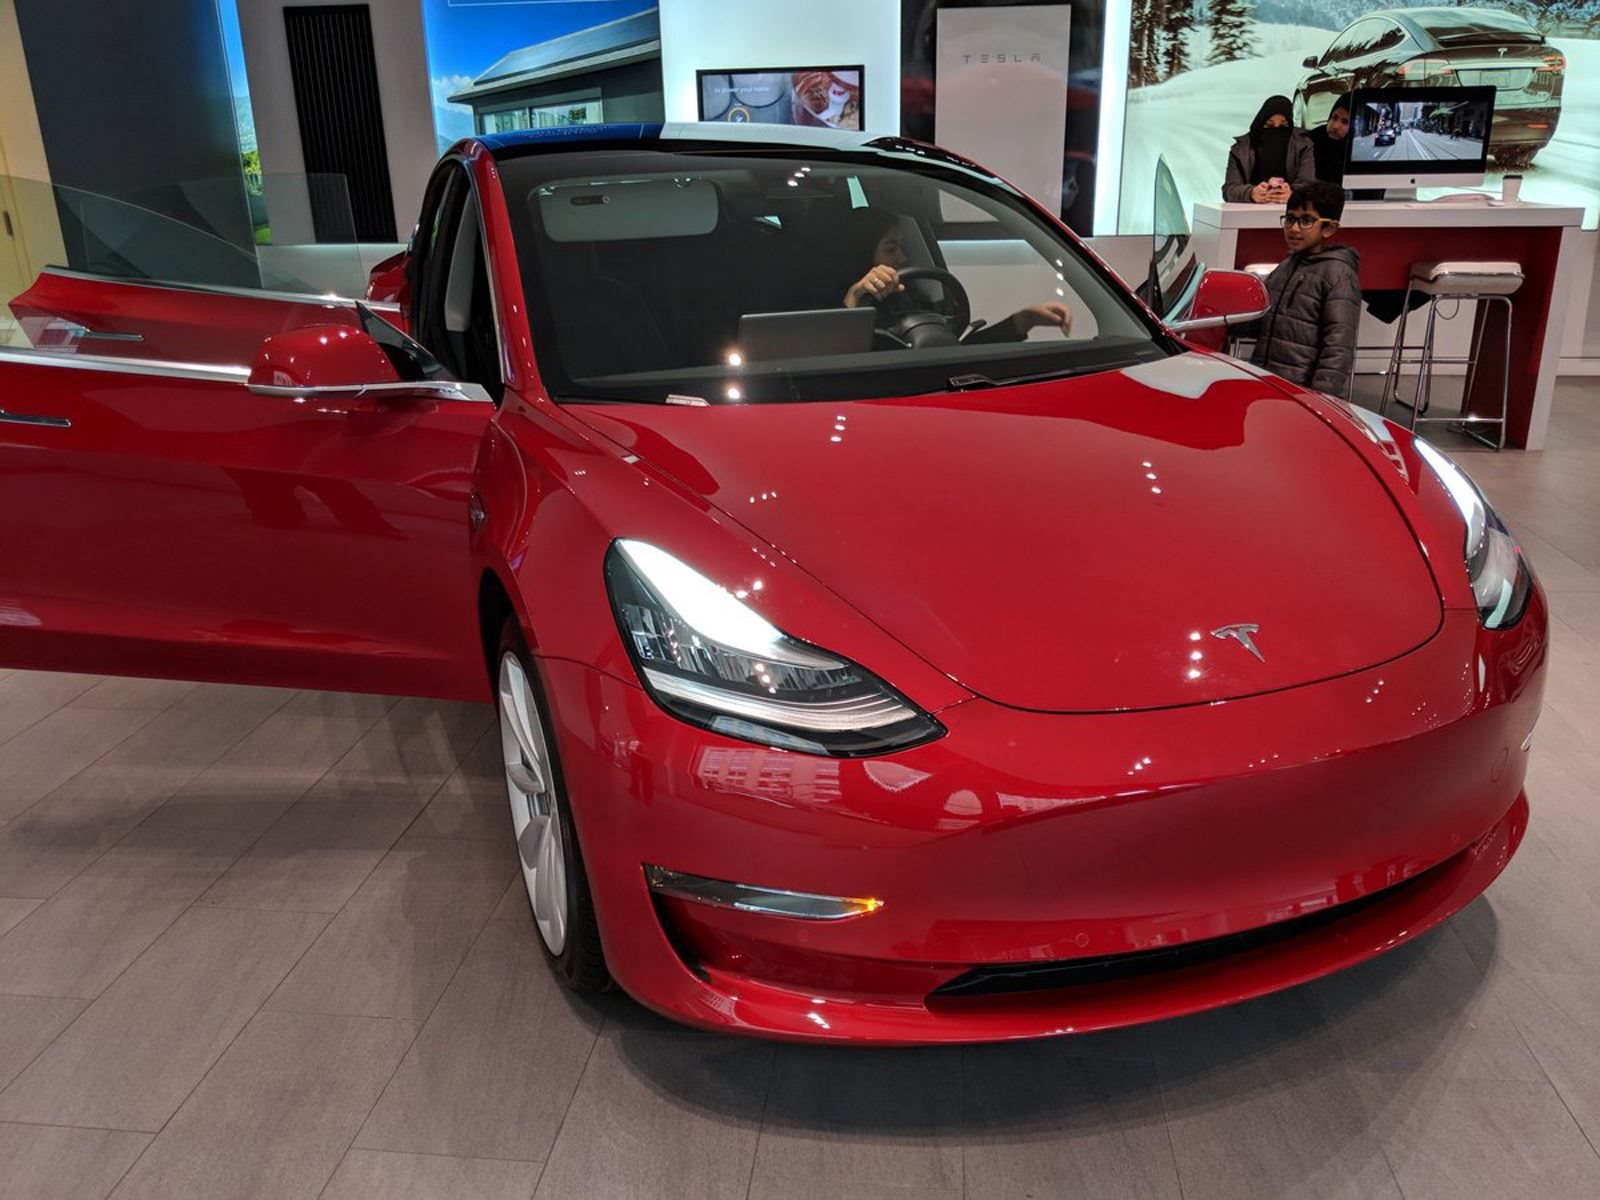 Check Out These Seriously Bad Tesla Model 3 Quality Control